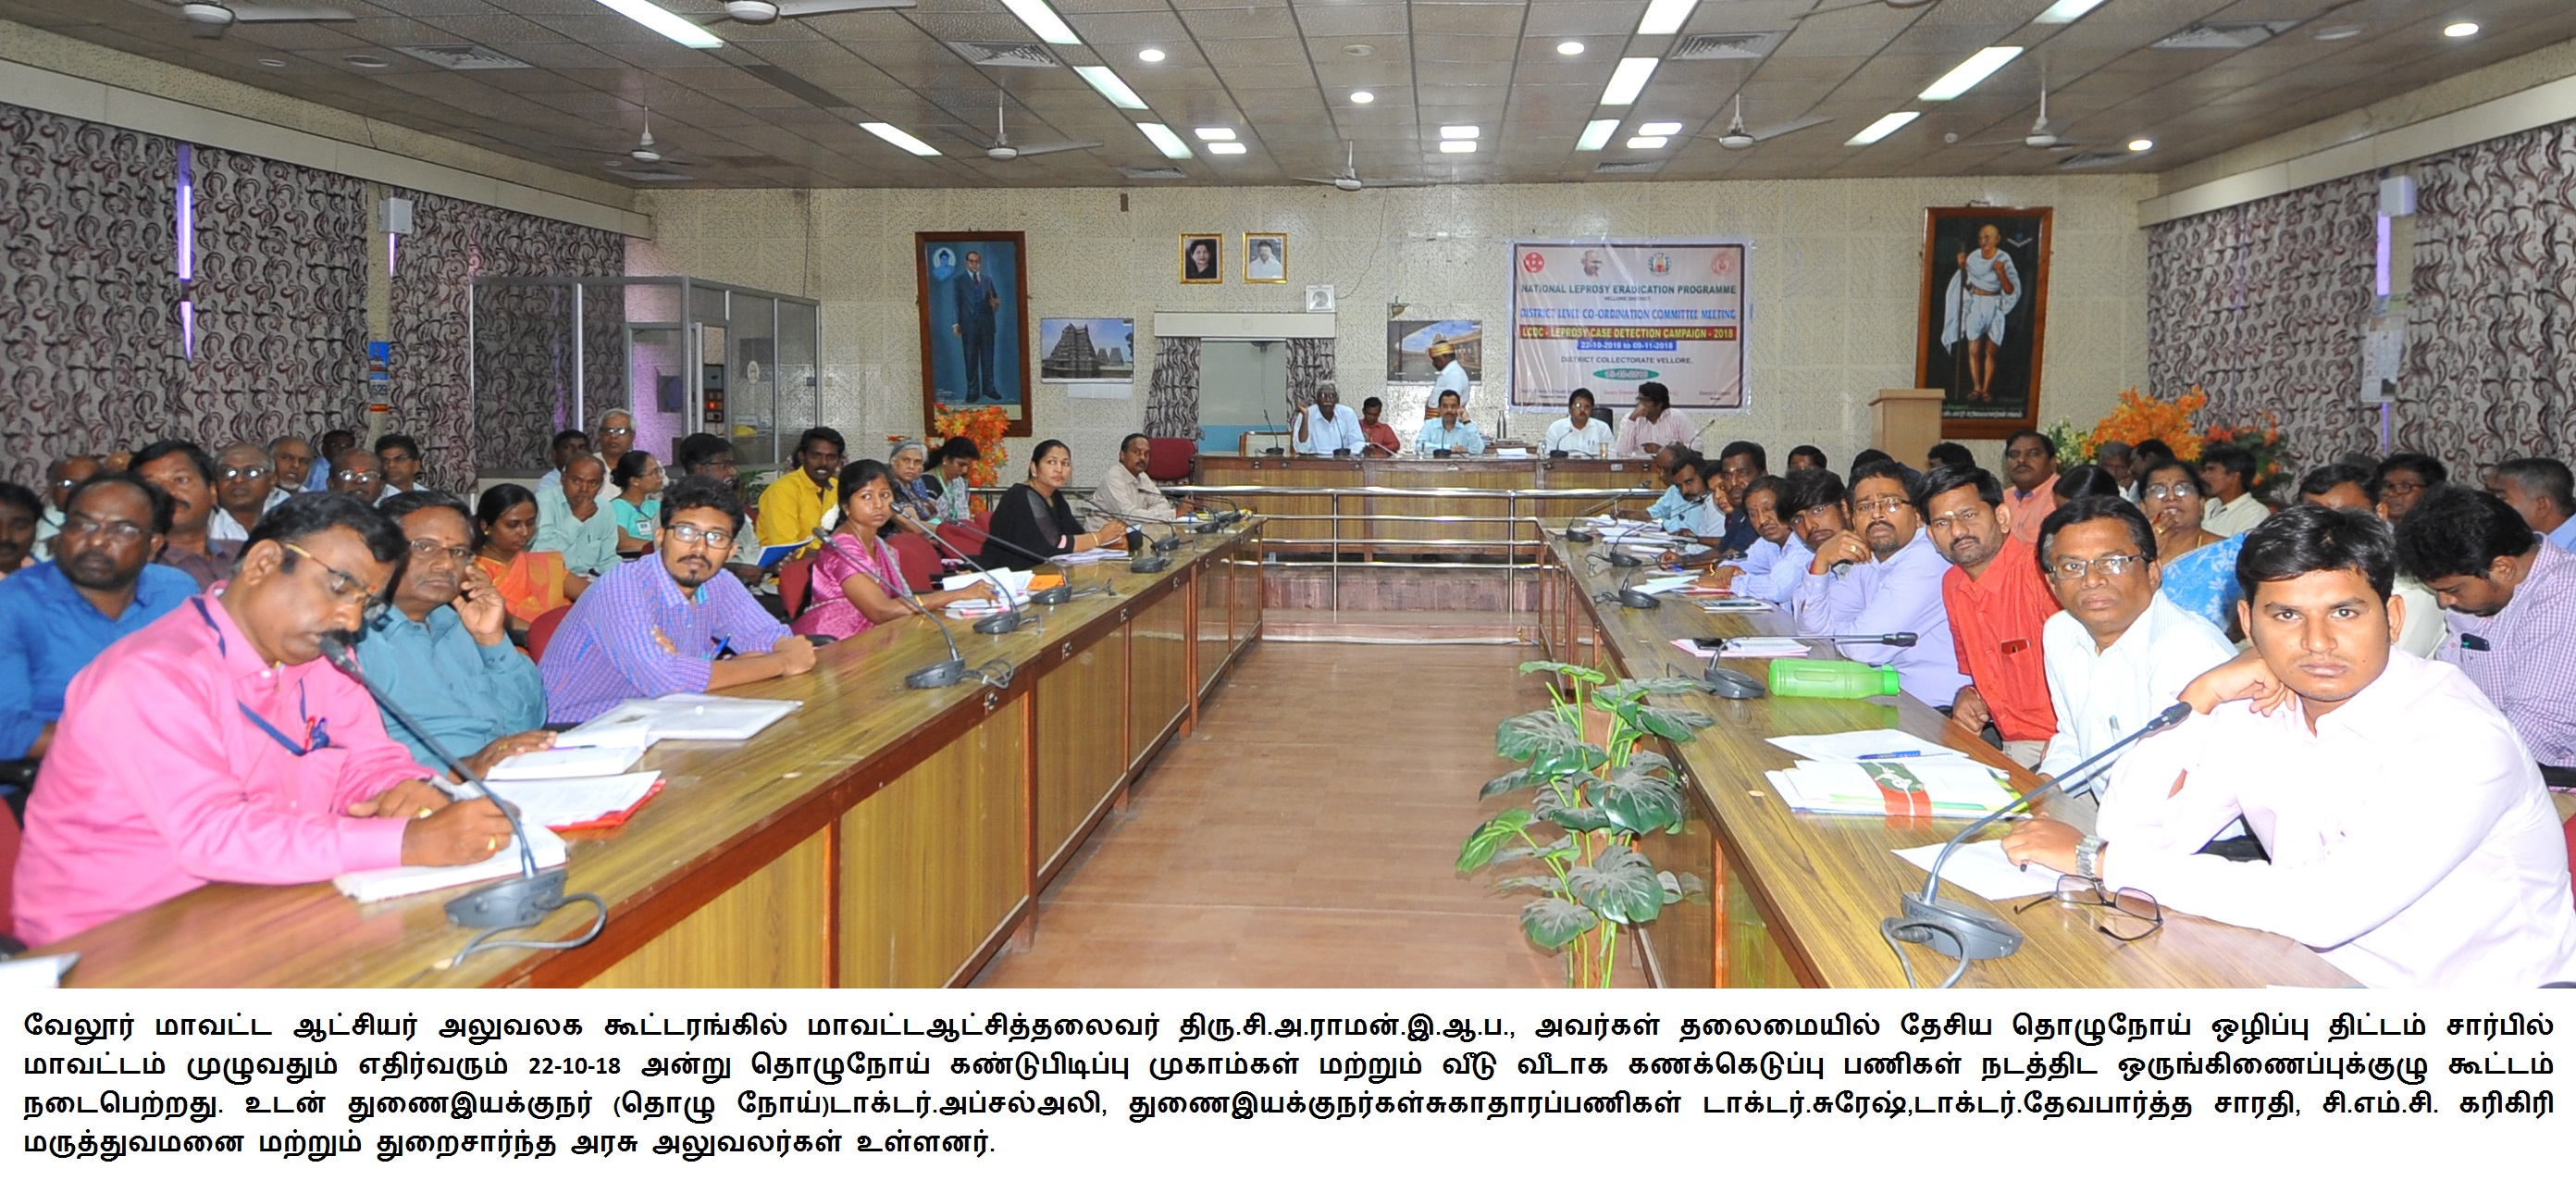 Food and Civil supplies Department Co-Ordination Committee meeting 15-10-18